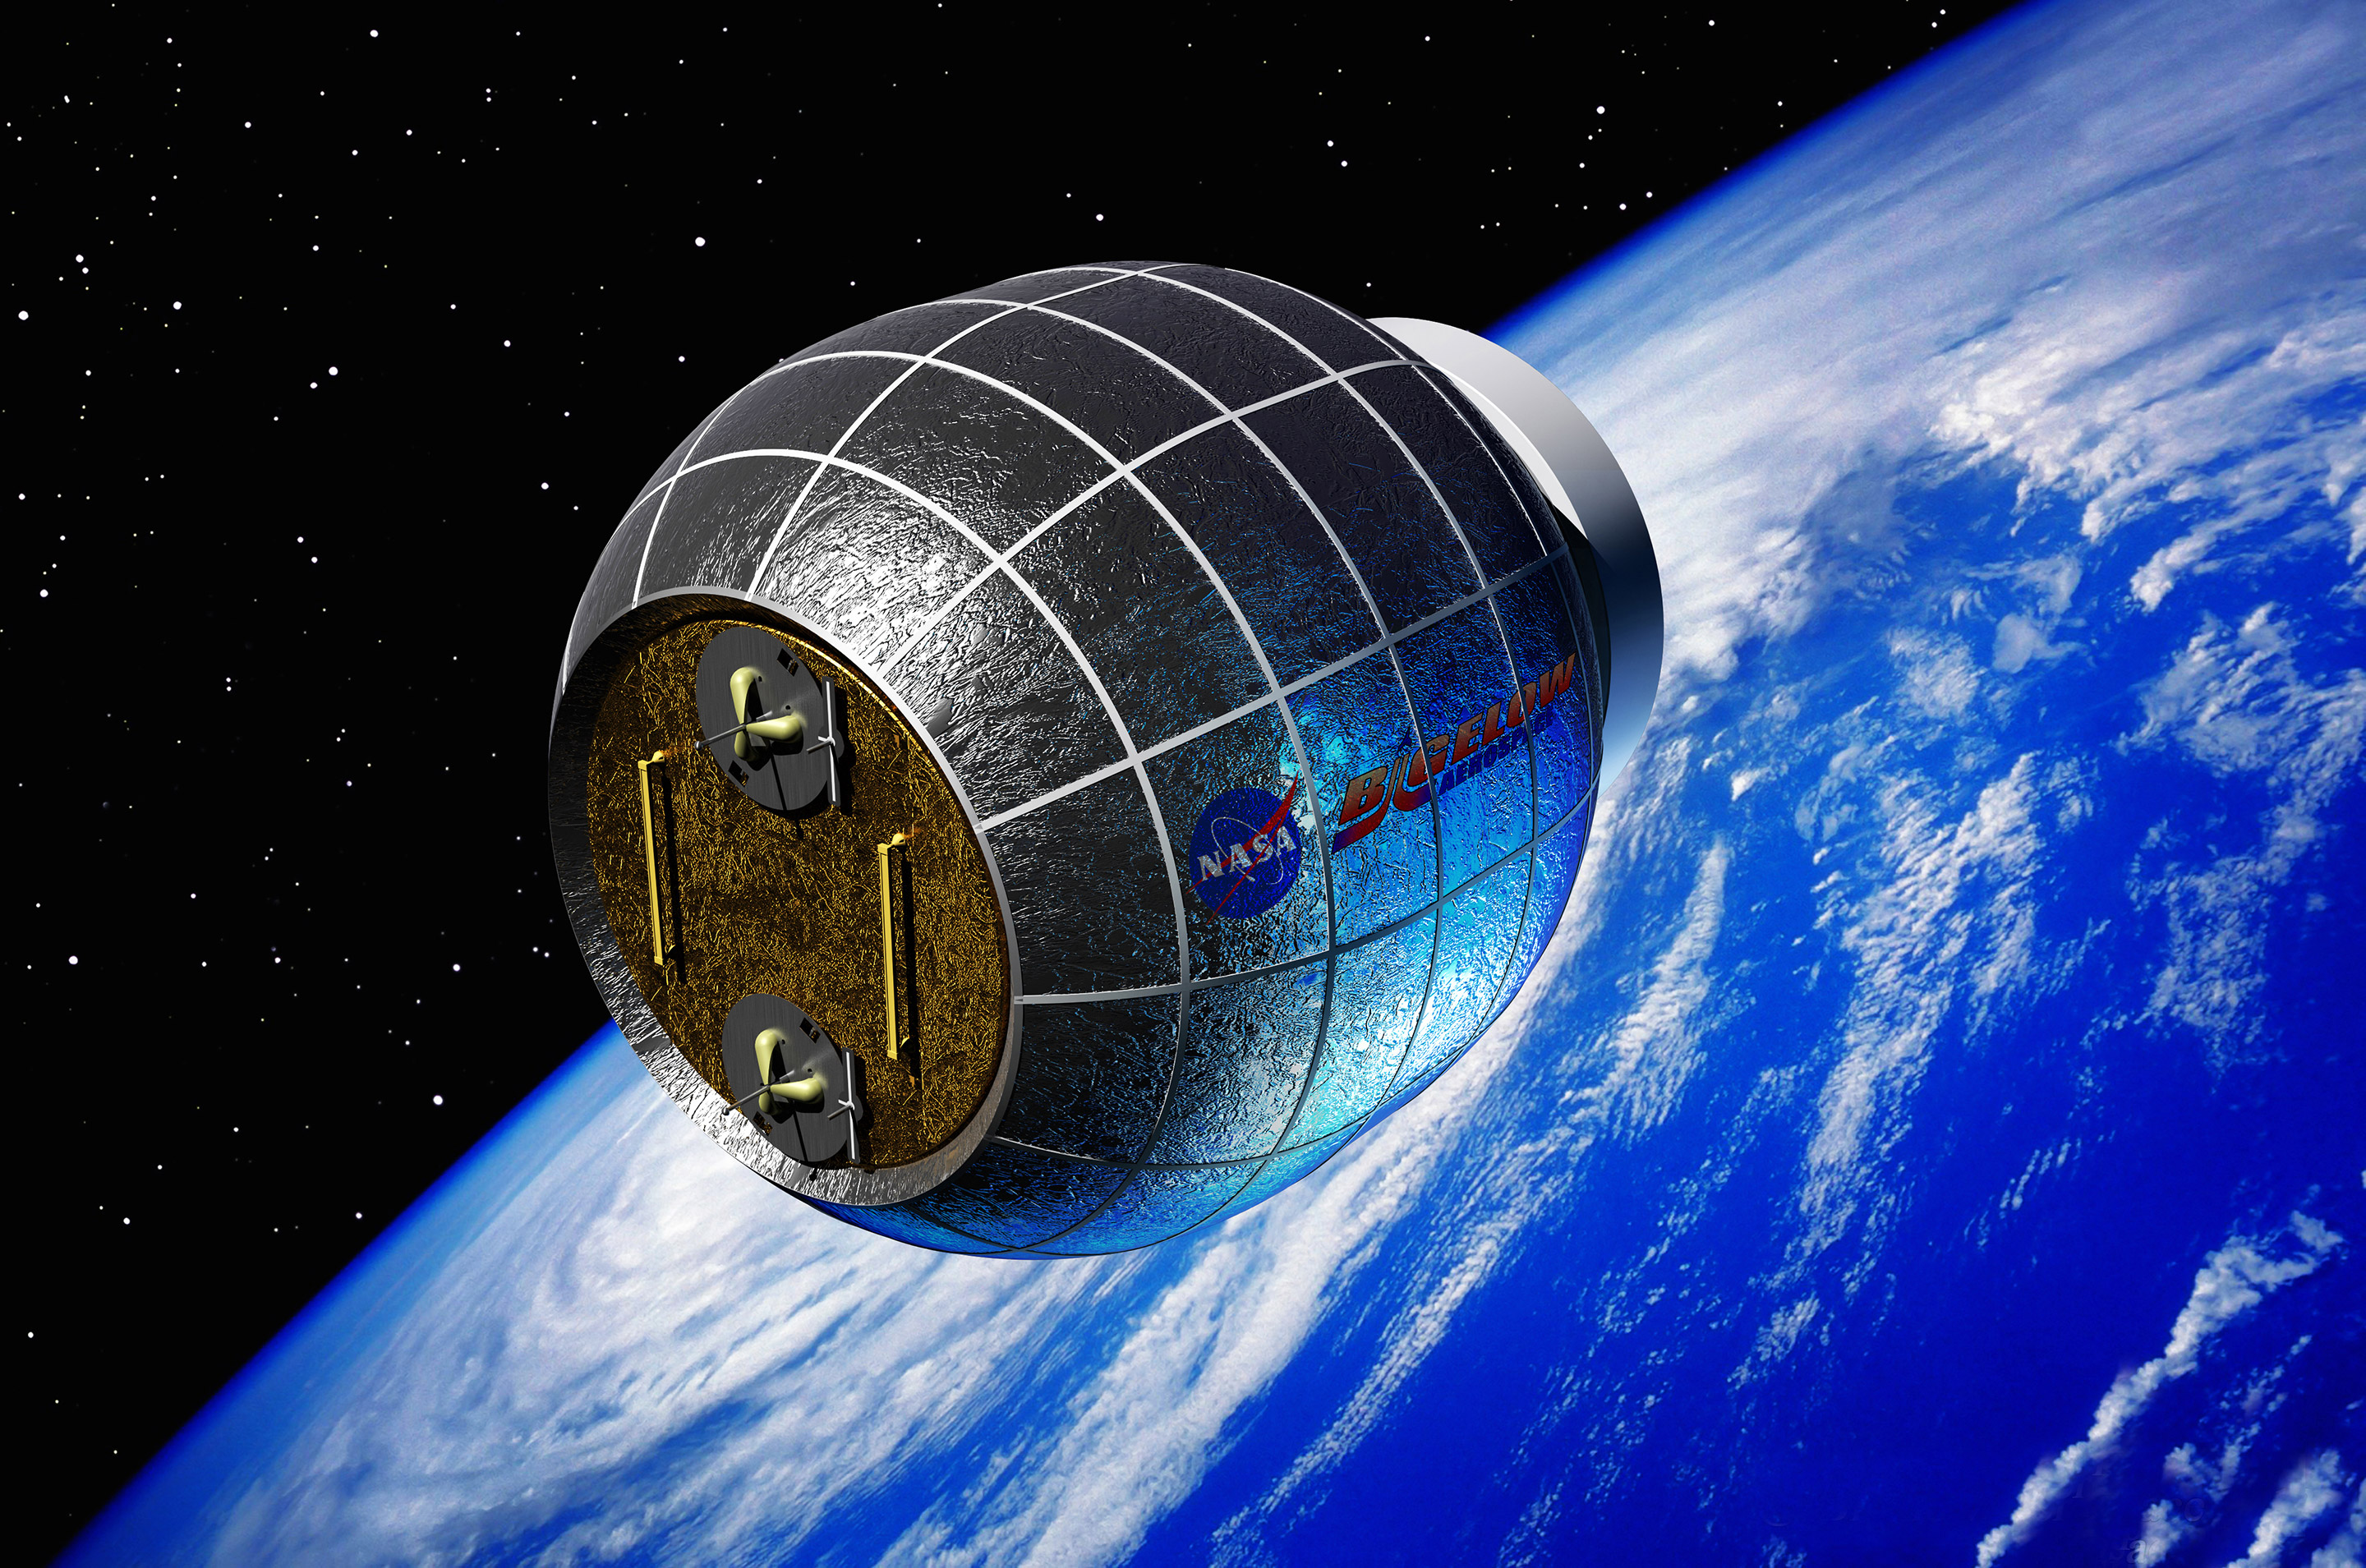 Artist rendering of the The Bigelow Expandable Activity Module (BEAM) which will be sent to the ISS in 2015. Image: Bigelow Aerospace